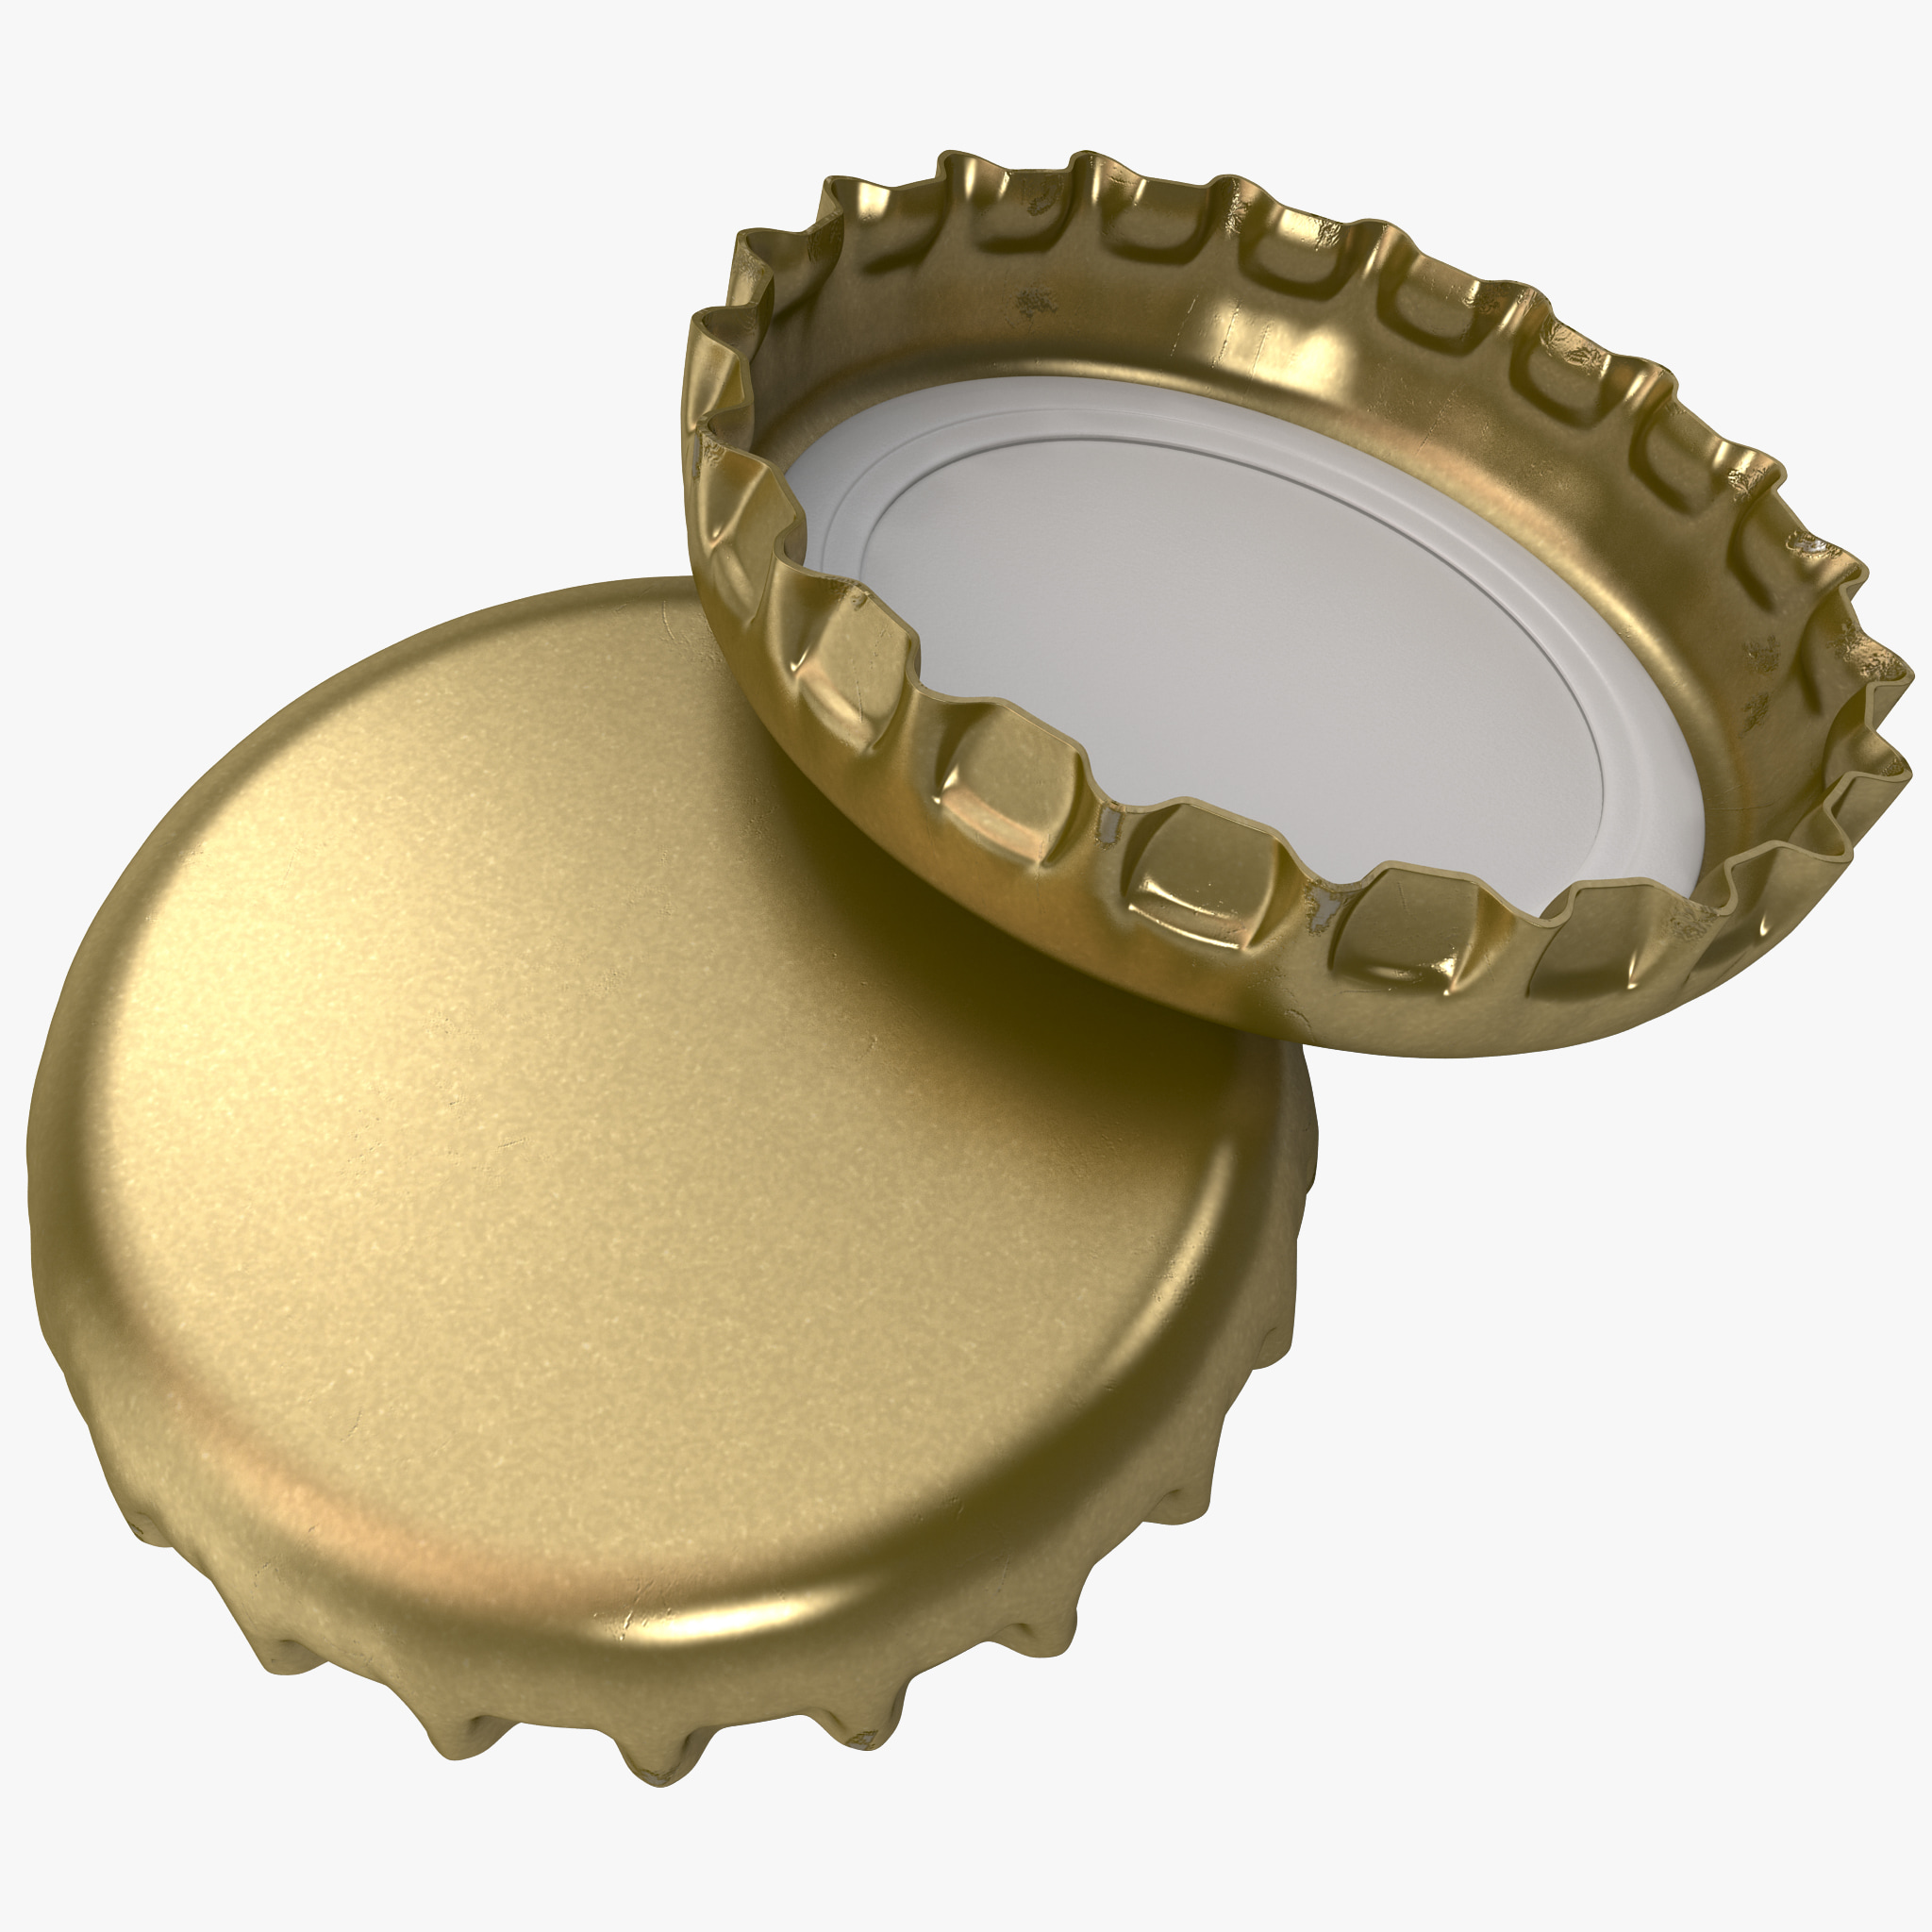 Crown cork bottle cap 3d model for What to make with beer bottle caps